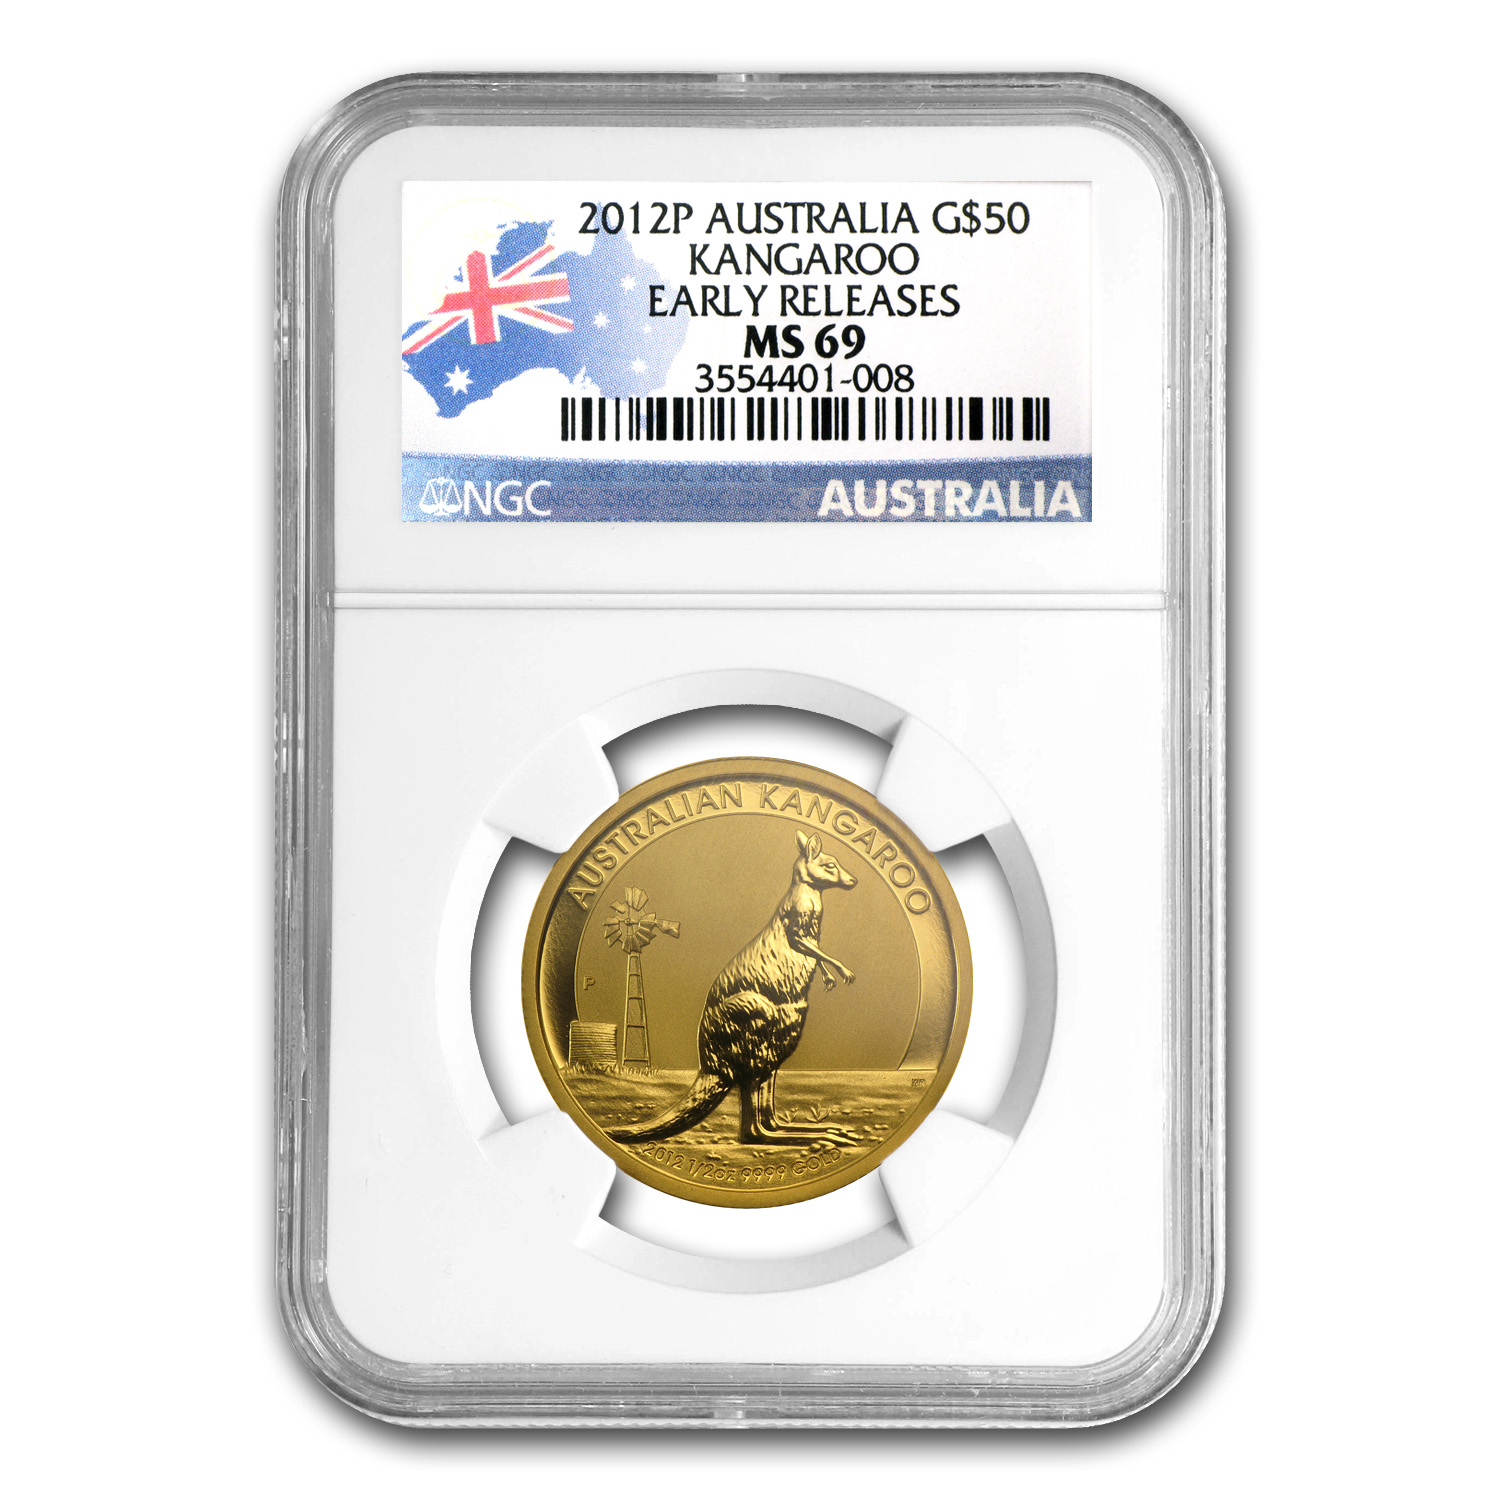 2012 Australia 1/2 oz Gold Kangaroo MS-69 NGC (Early Releases)